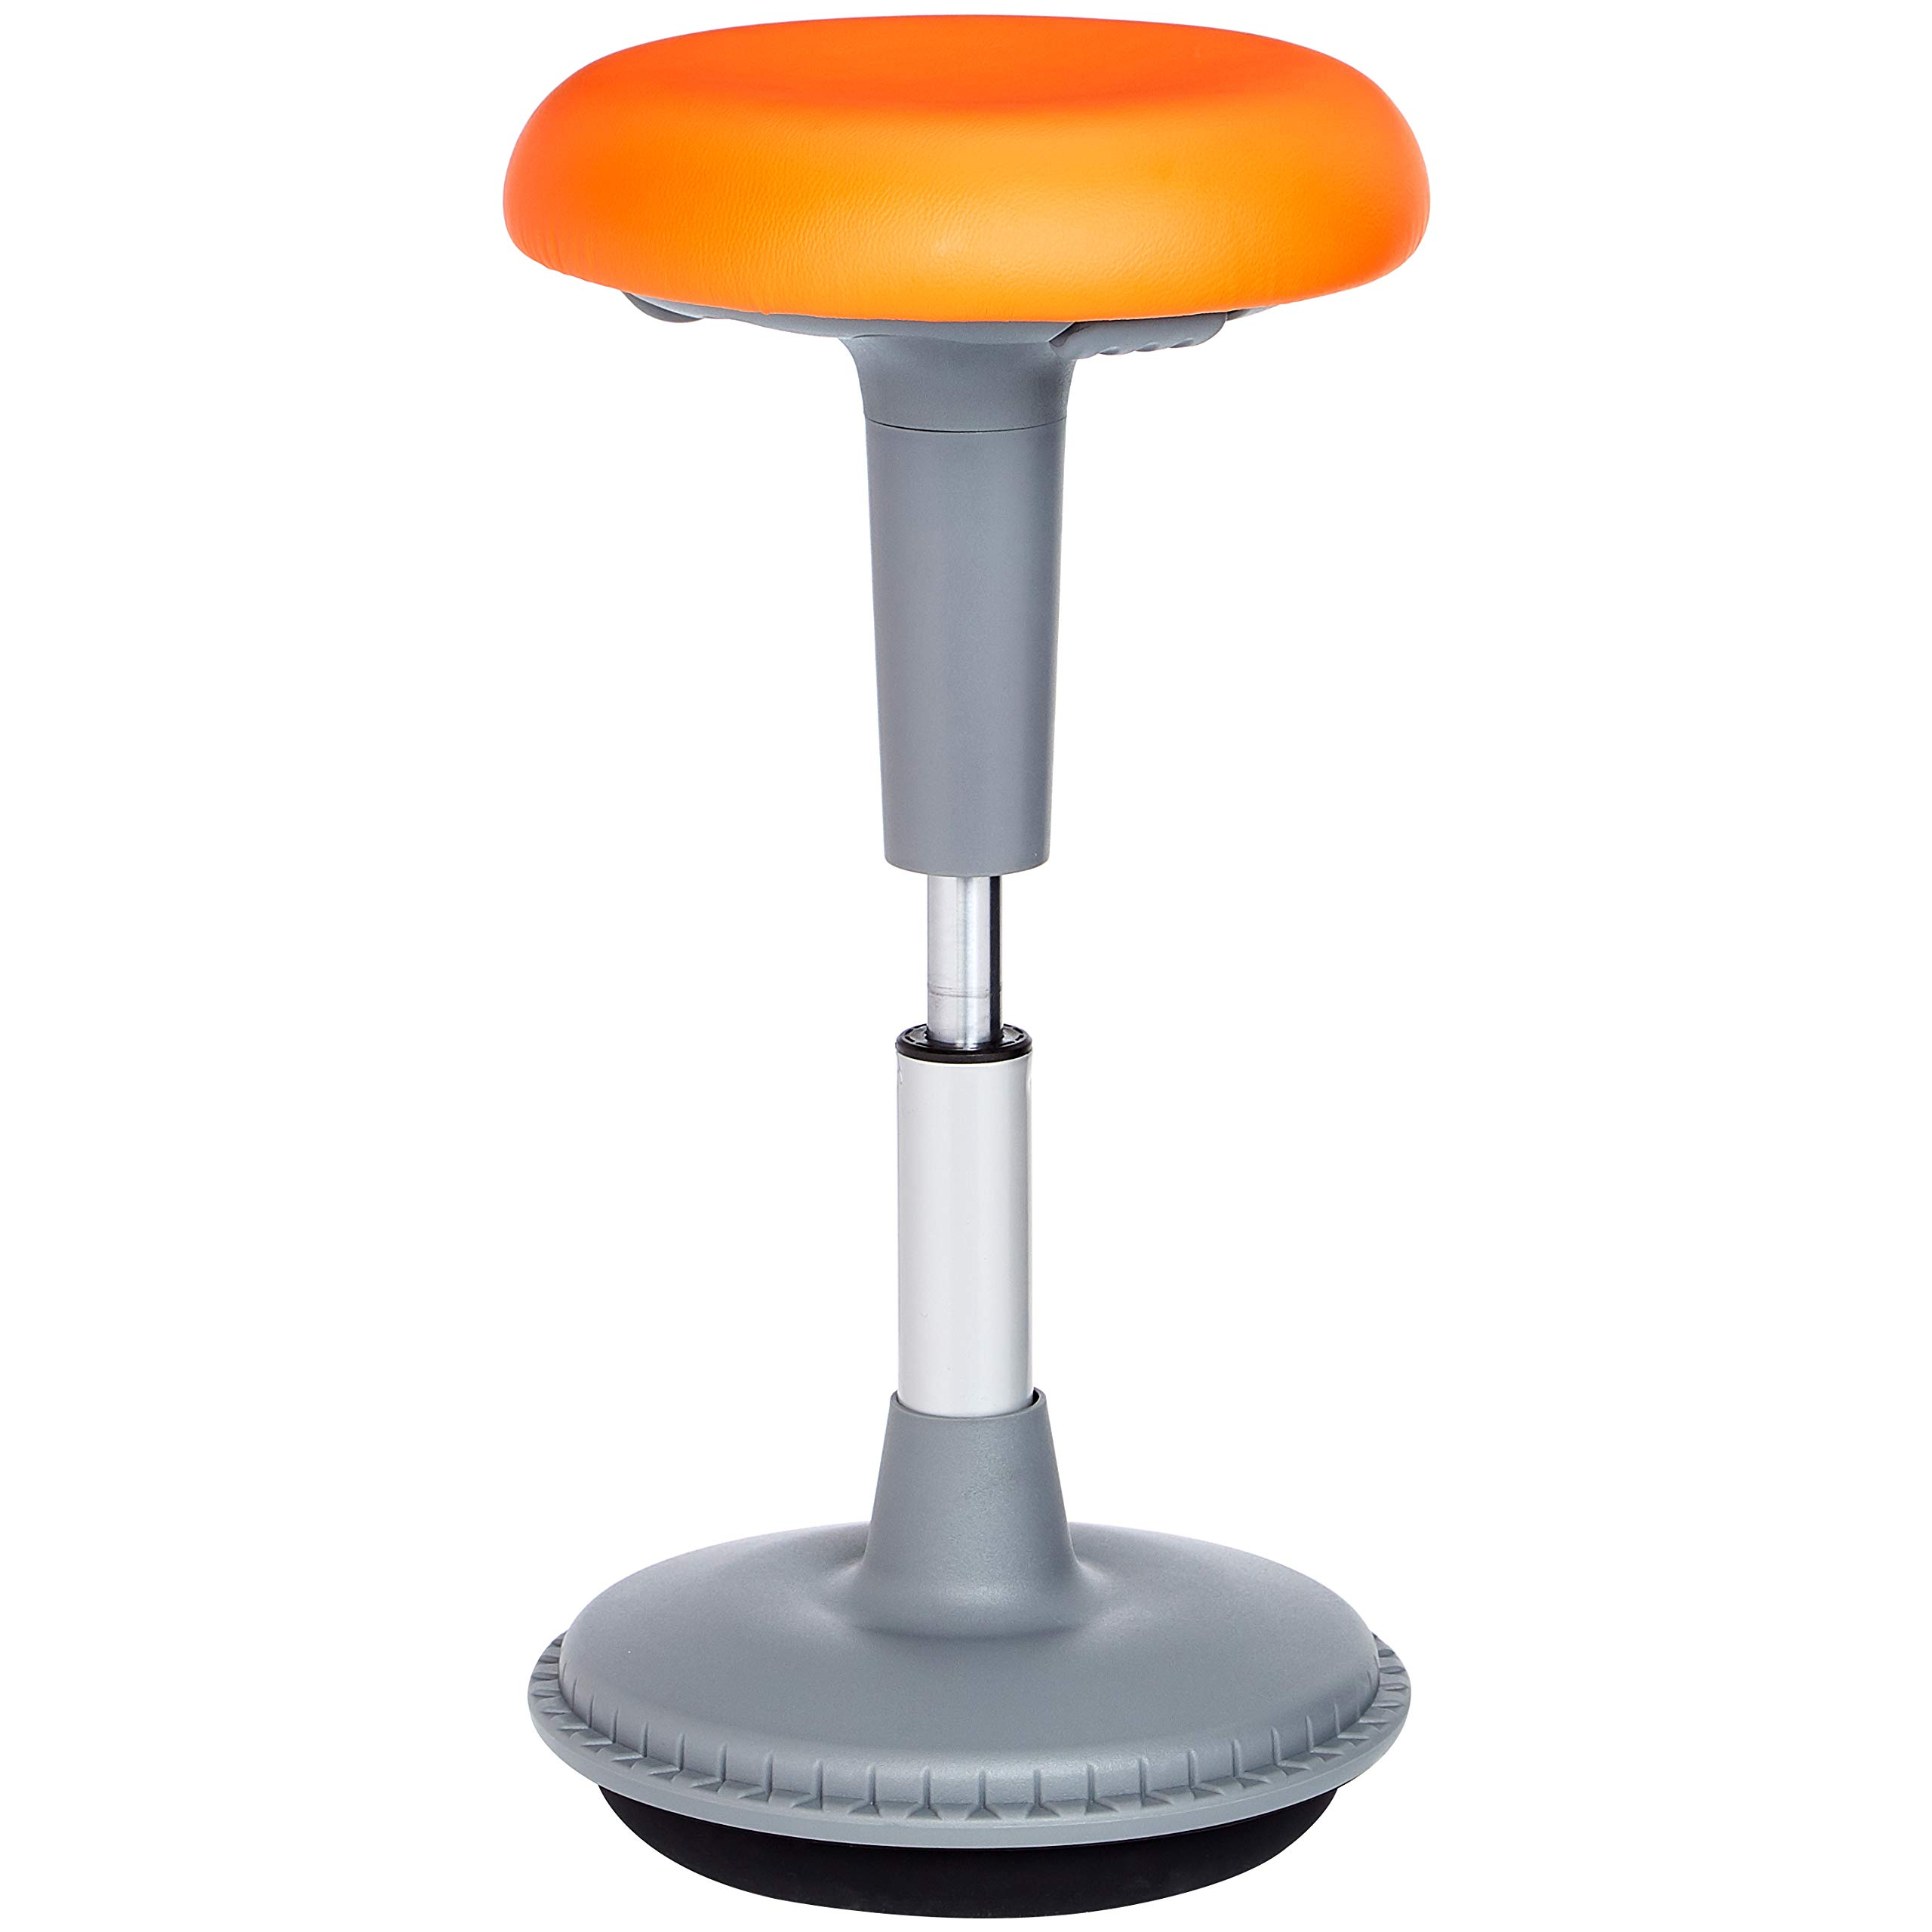 AmazonBasics Adjustable Tilt Stool, Orange